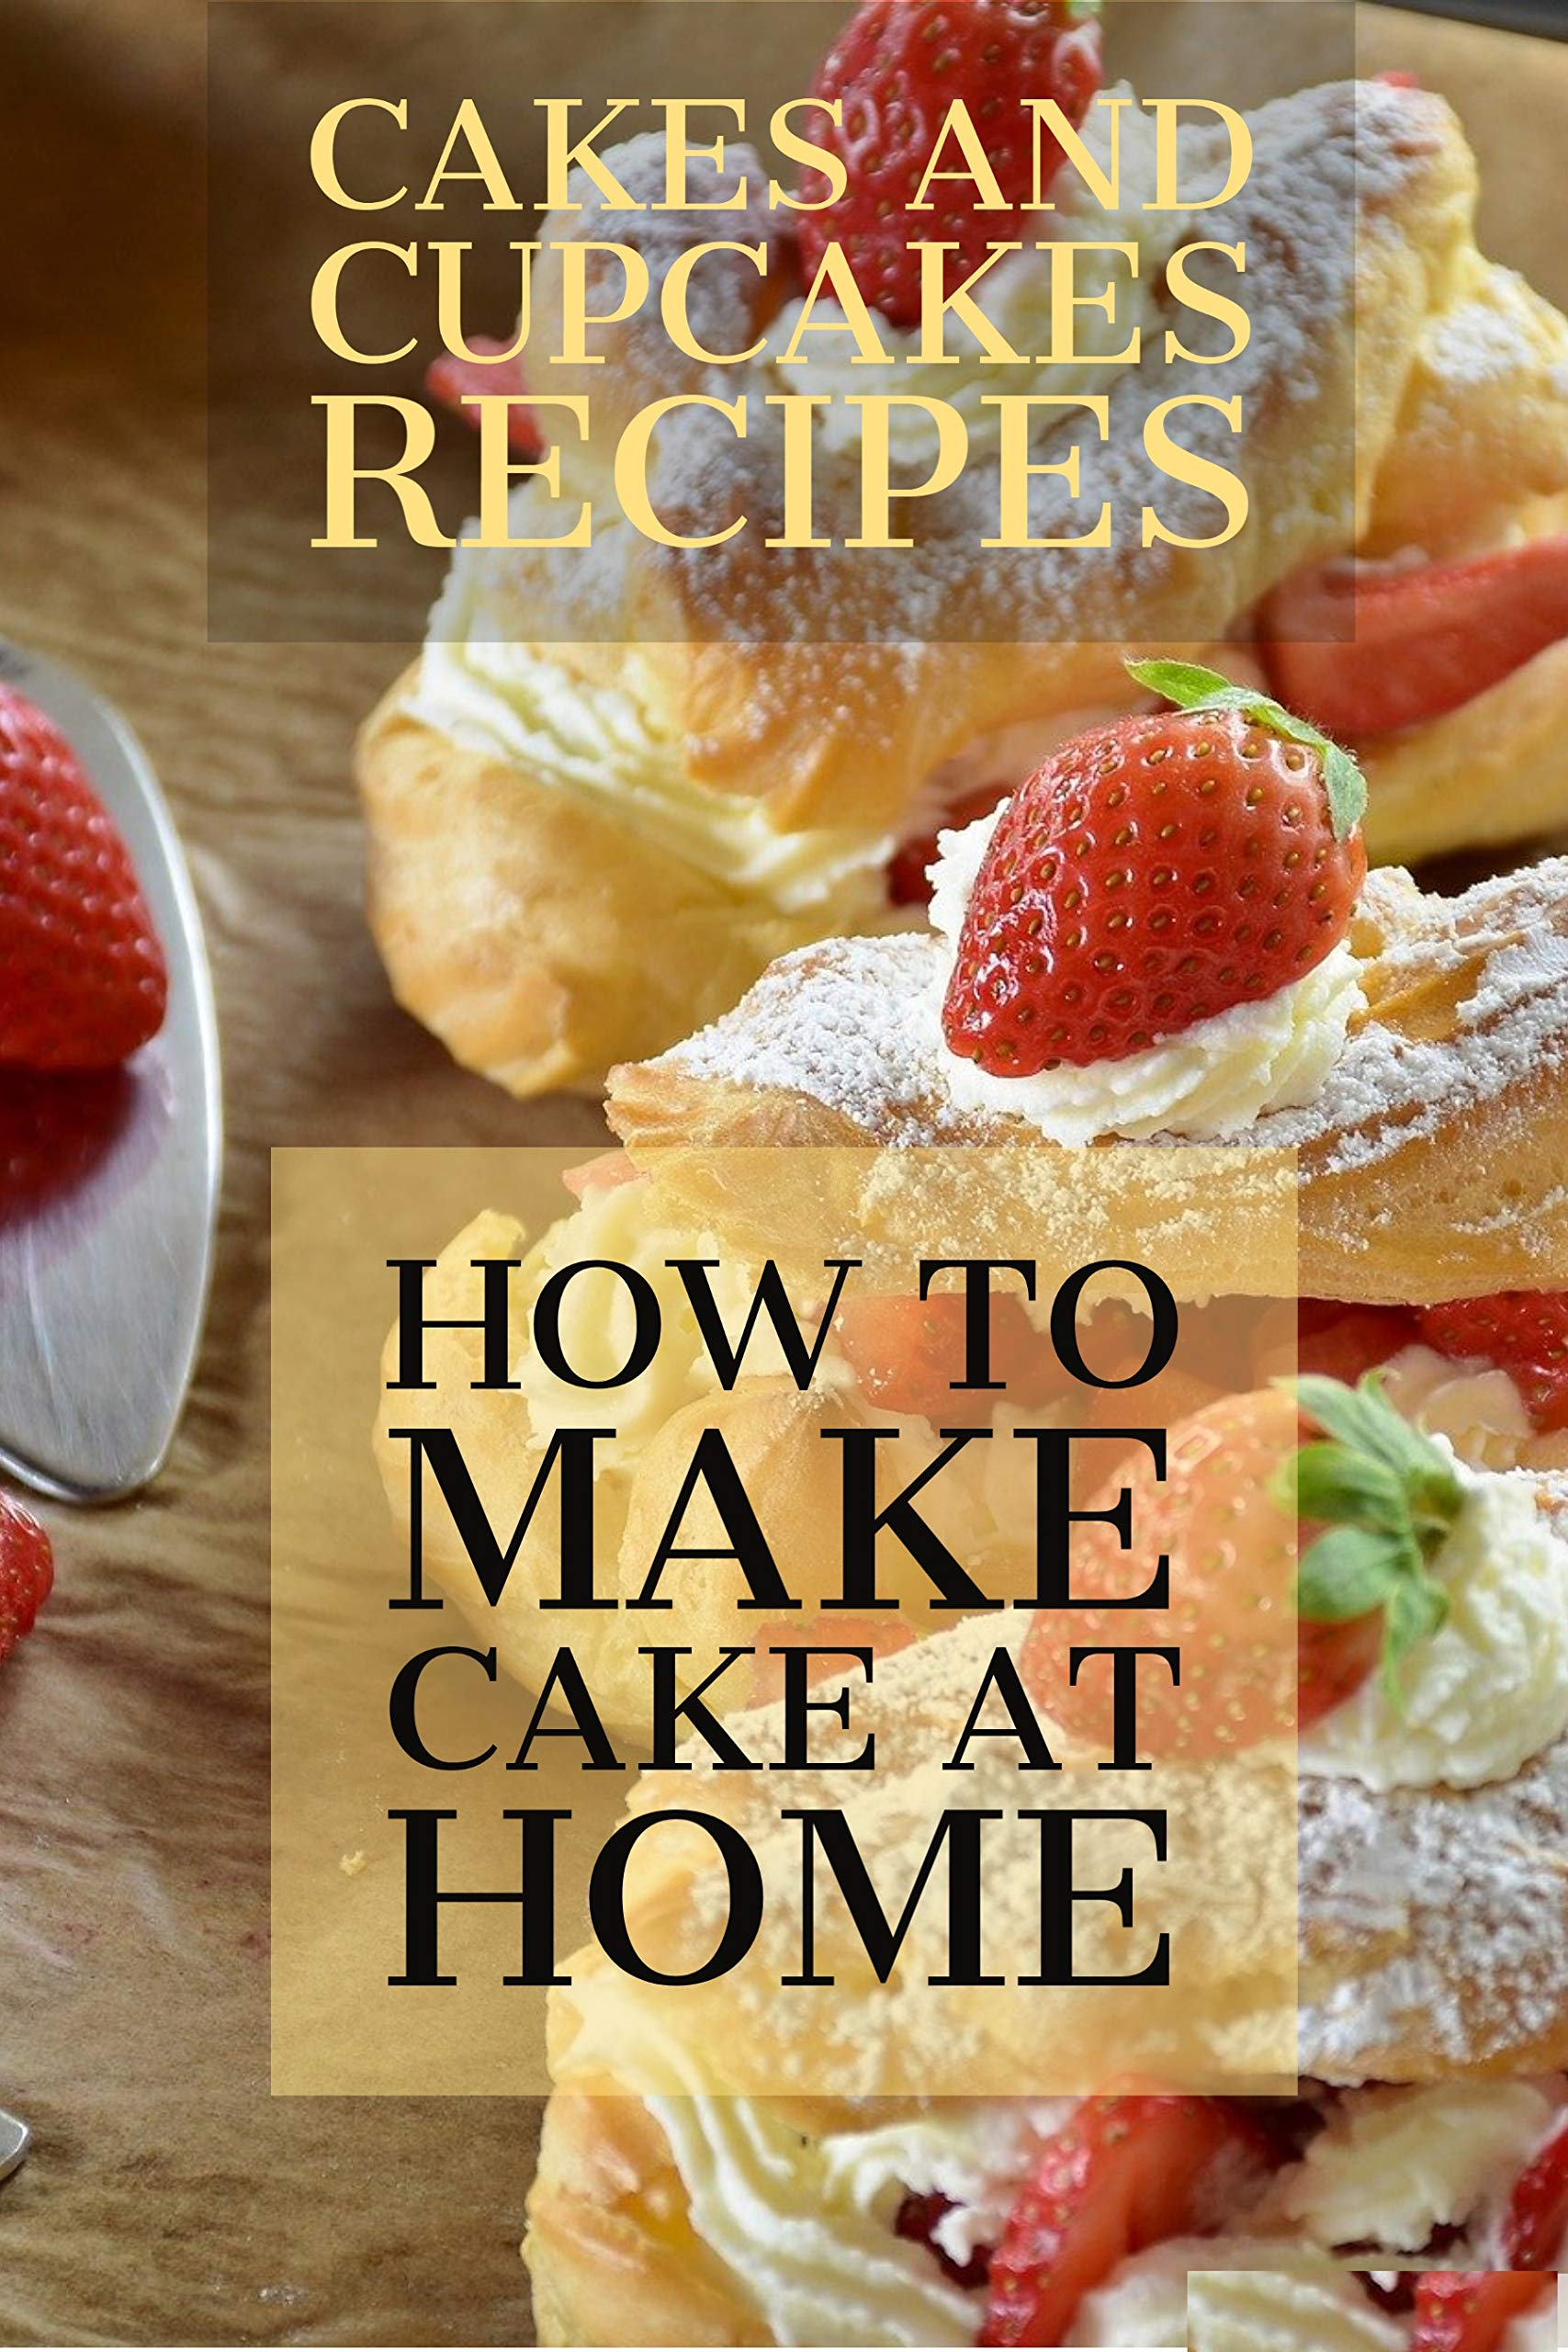 CAKES AND CUPCAKES RECIPES: HOW TO MAKE CAKE AT HOME? The Baking Bible 150 Cake Recipes and 164 Cupcake, Pie and Cookie Recipes. 314 Baking Recipes.